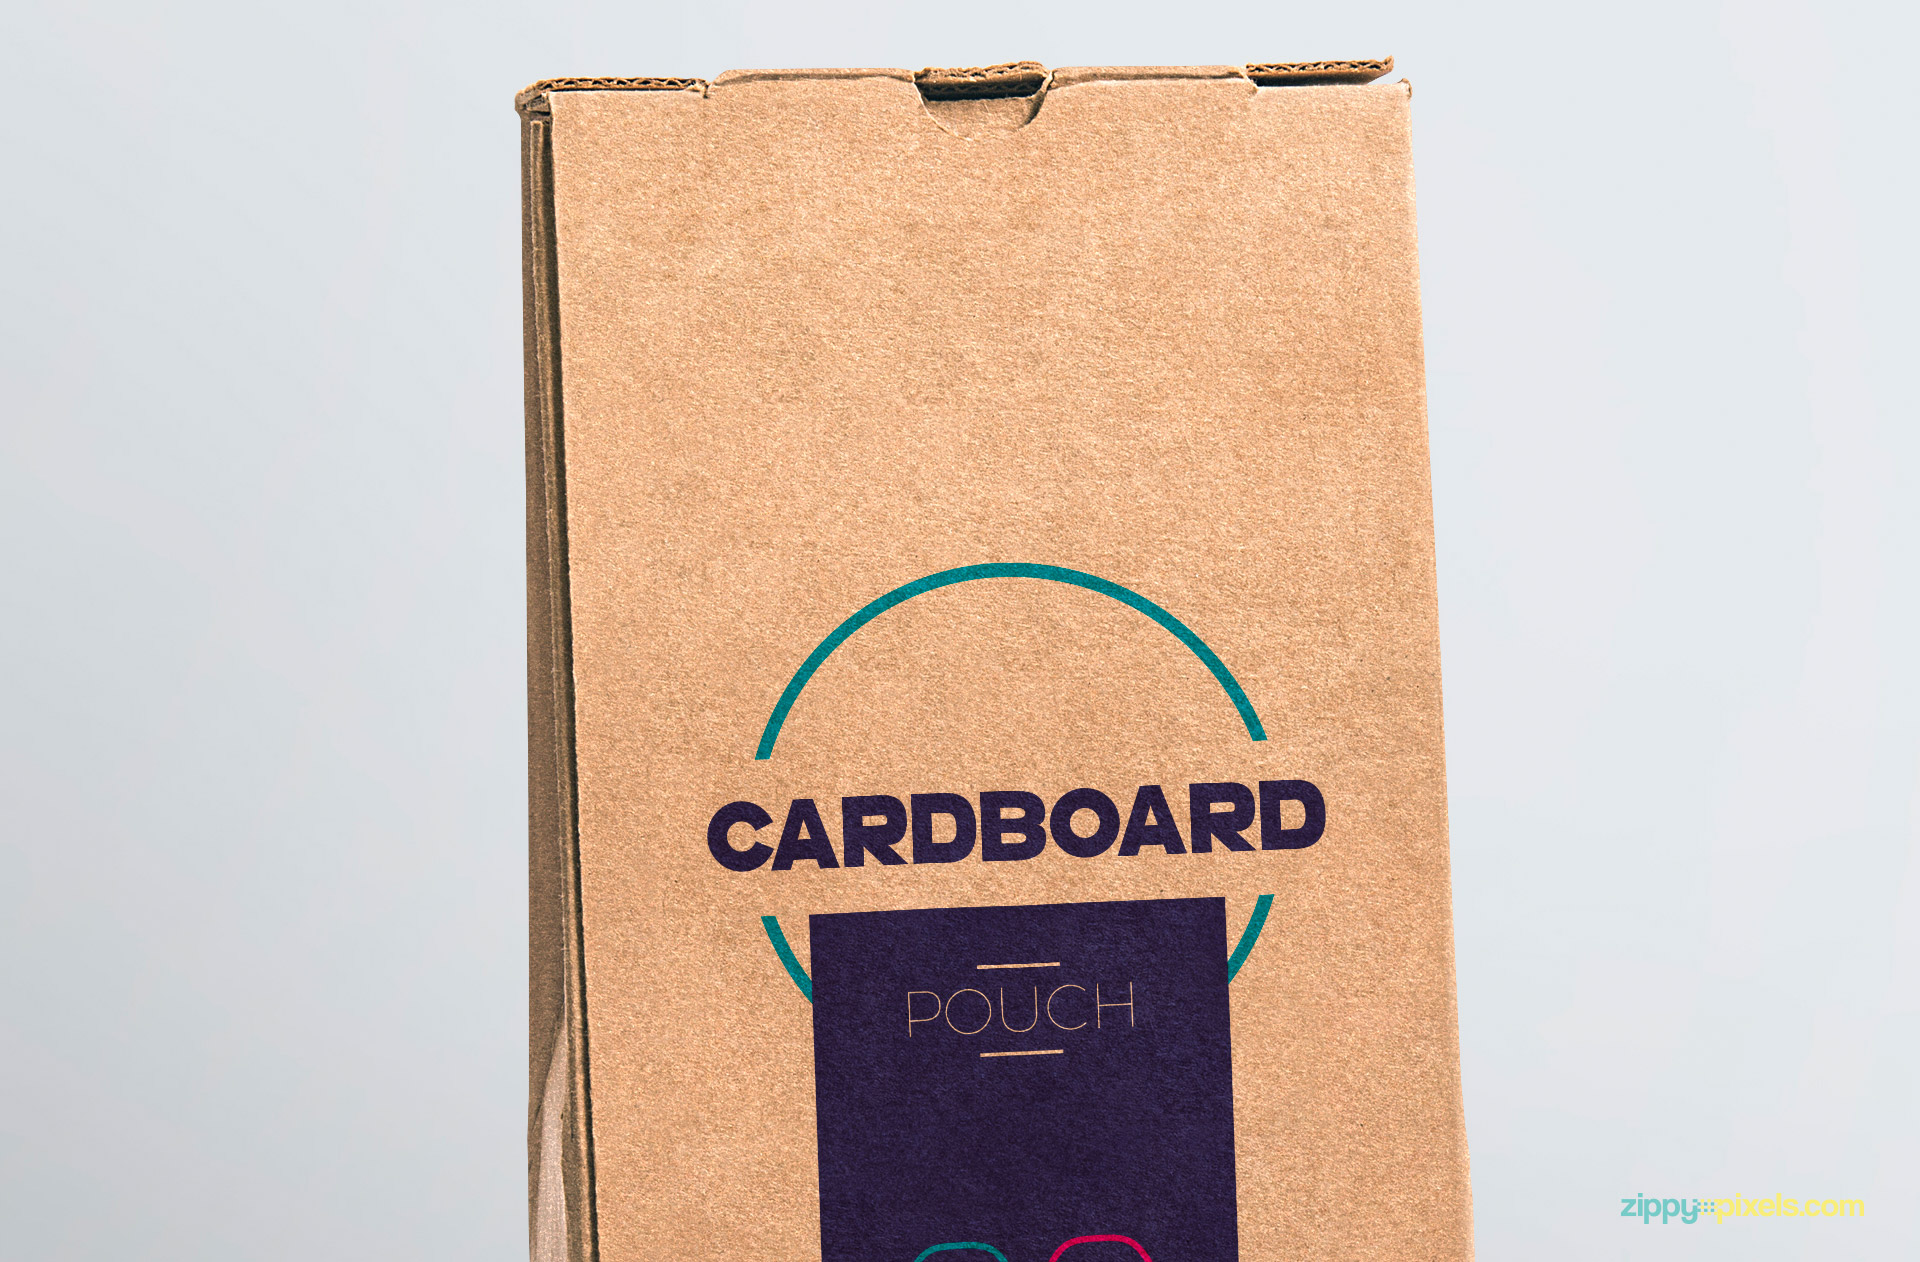 Fine cuts of the cardboard pouch packaging mockup.